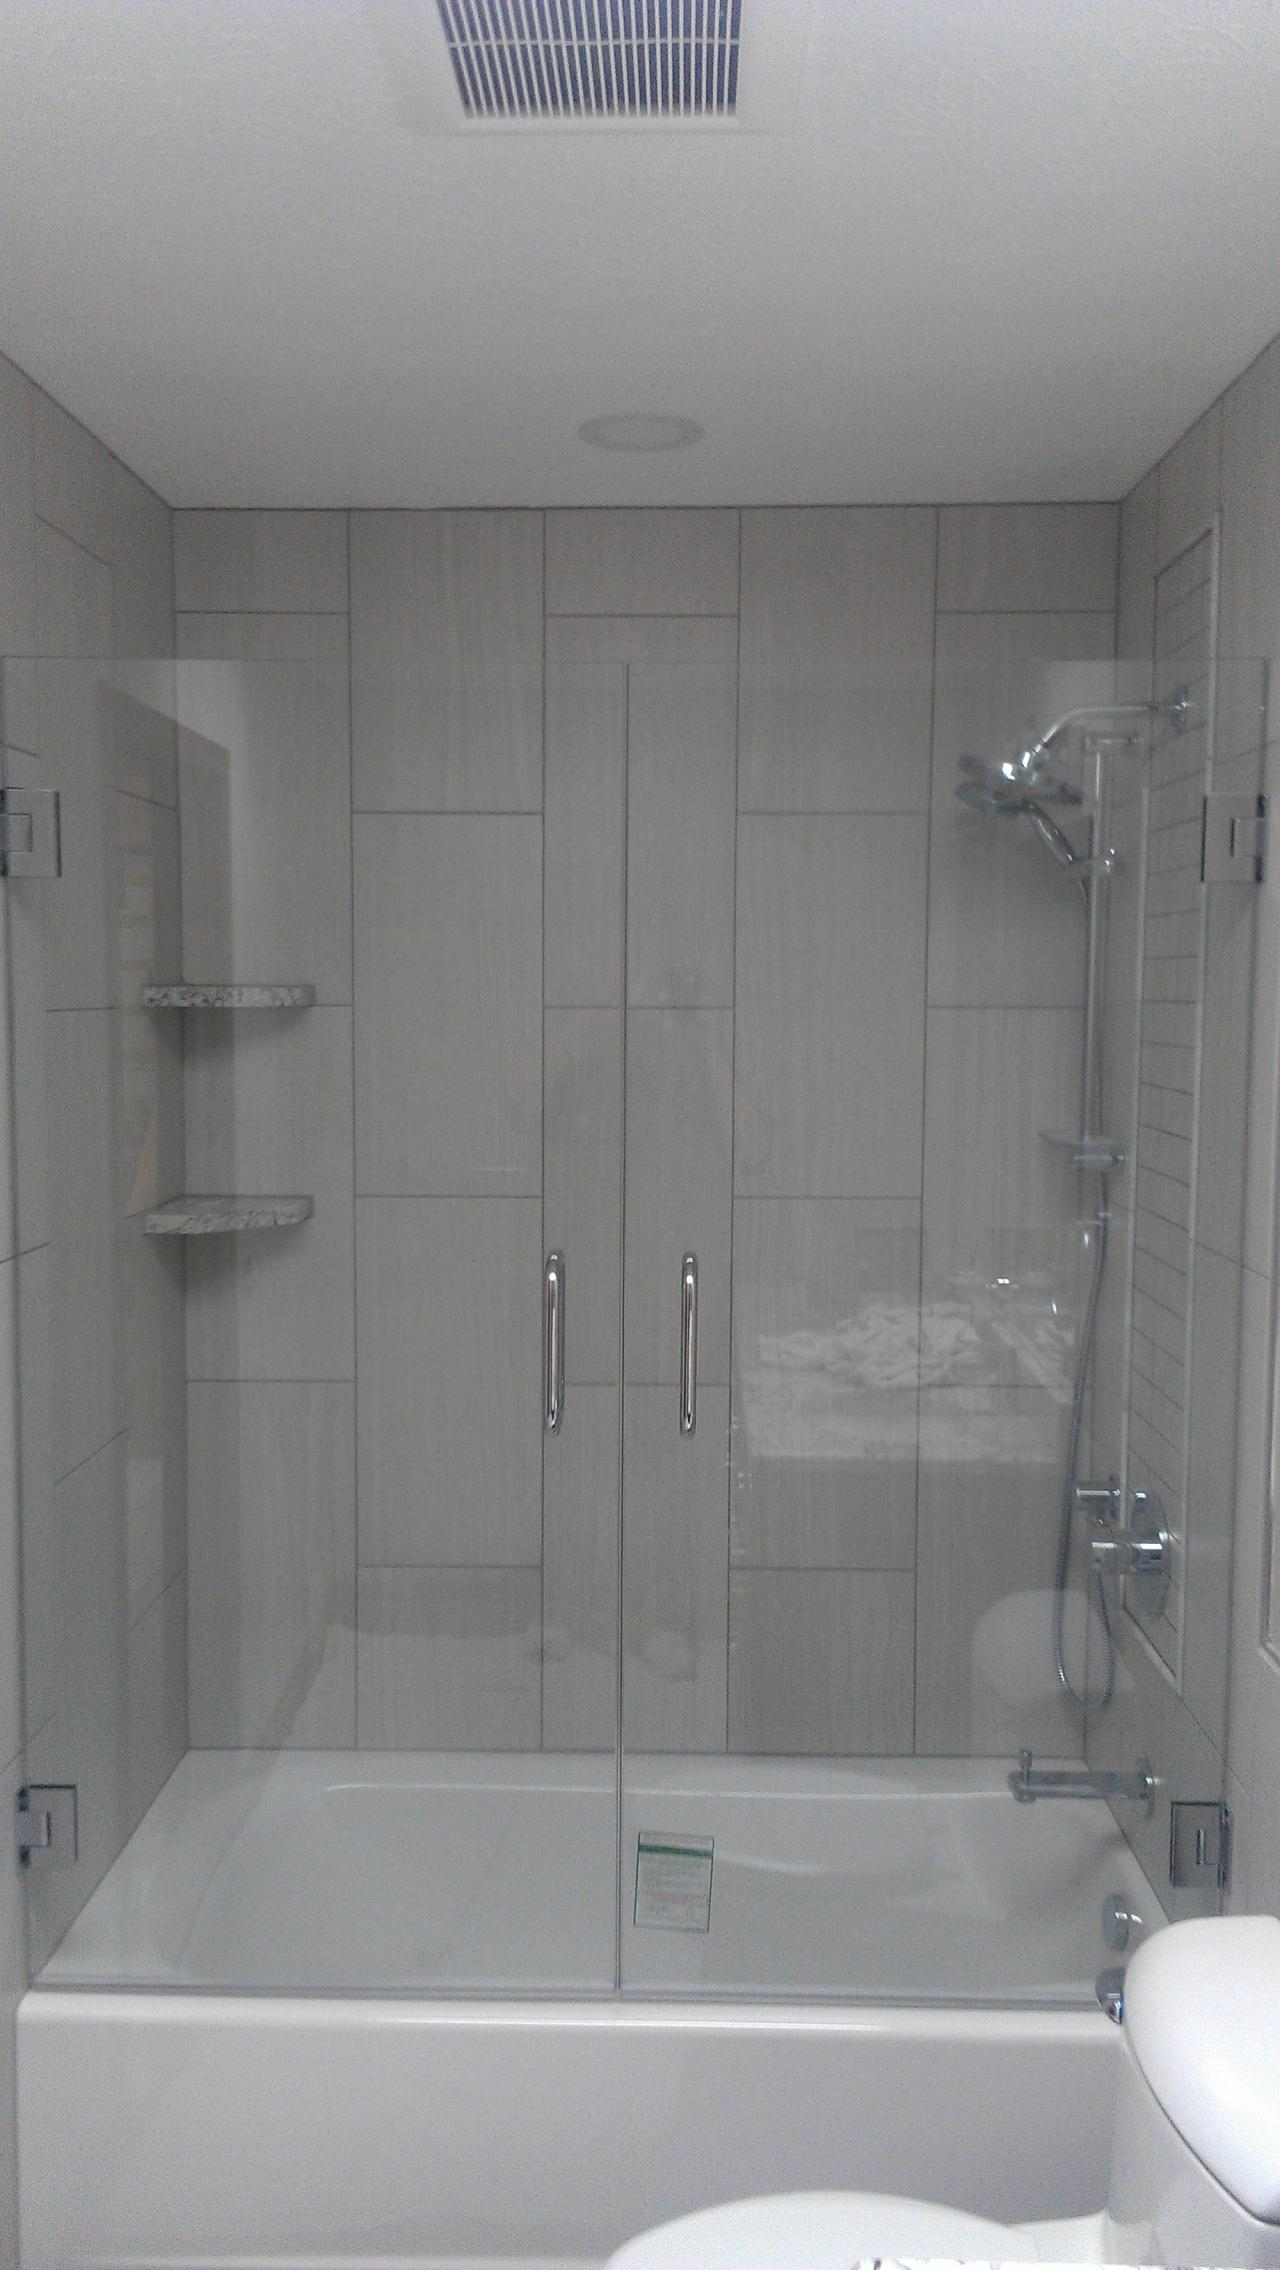 12x24 Tile Shower 12x24 Tile Shower Image Cabinets And Shower Mandra Tavern Com